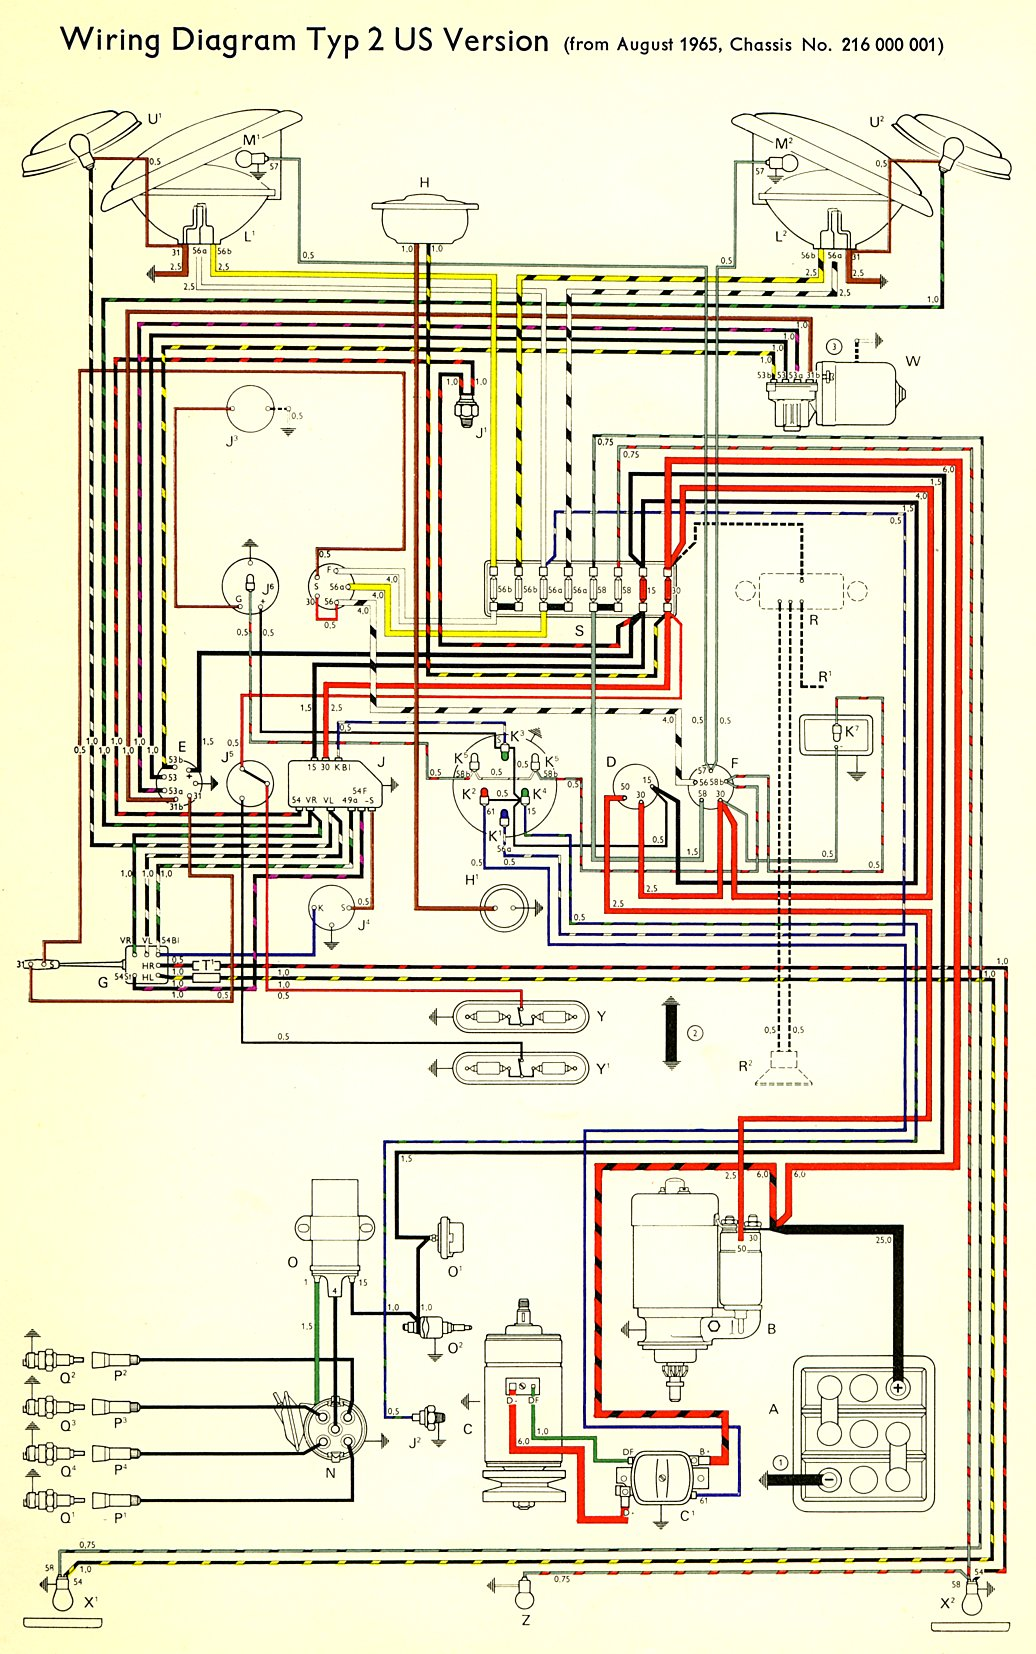 bus_66_USA 1966 bus wiring diagram (usa) thegoldenbug com vw wiring diagrams at gsmportal.co